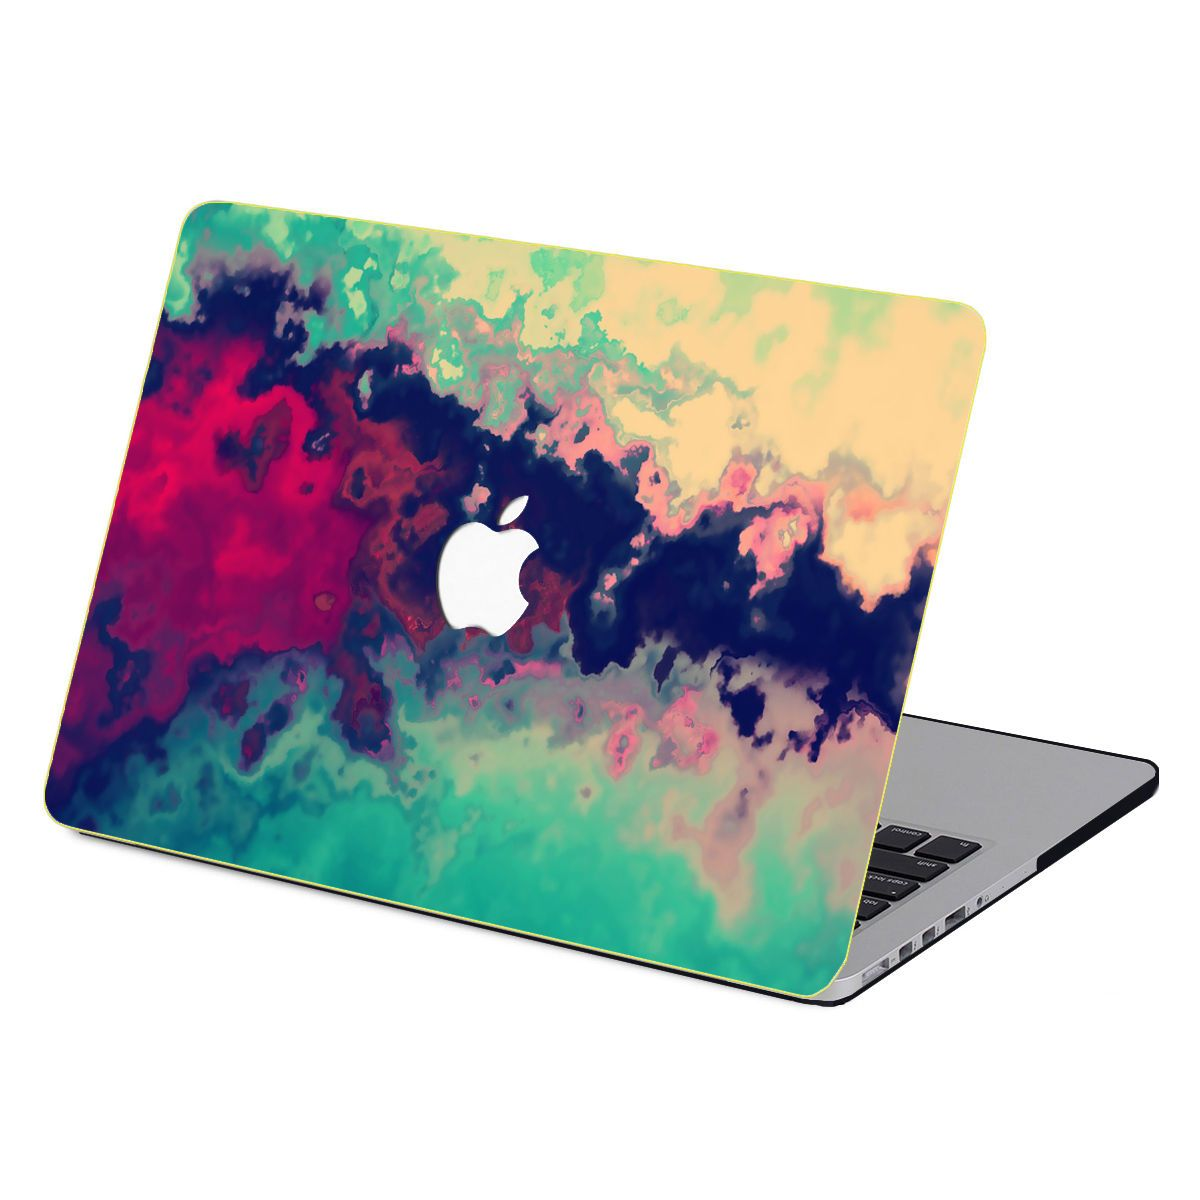 vintage painting laptop hard case cover for macbook air pro 11 13 15 retina 12 vintage. Black Bedroom Furniture Sets. Home Design Ideas